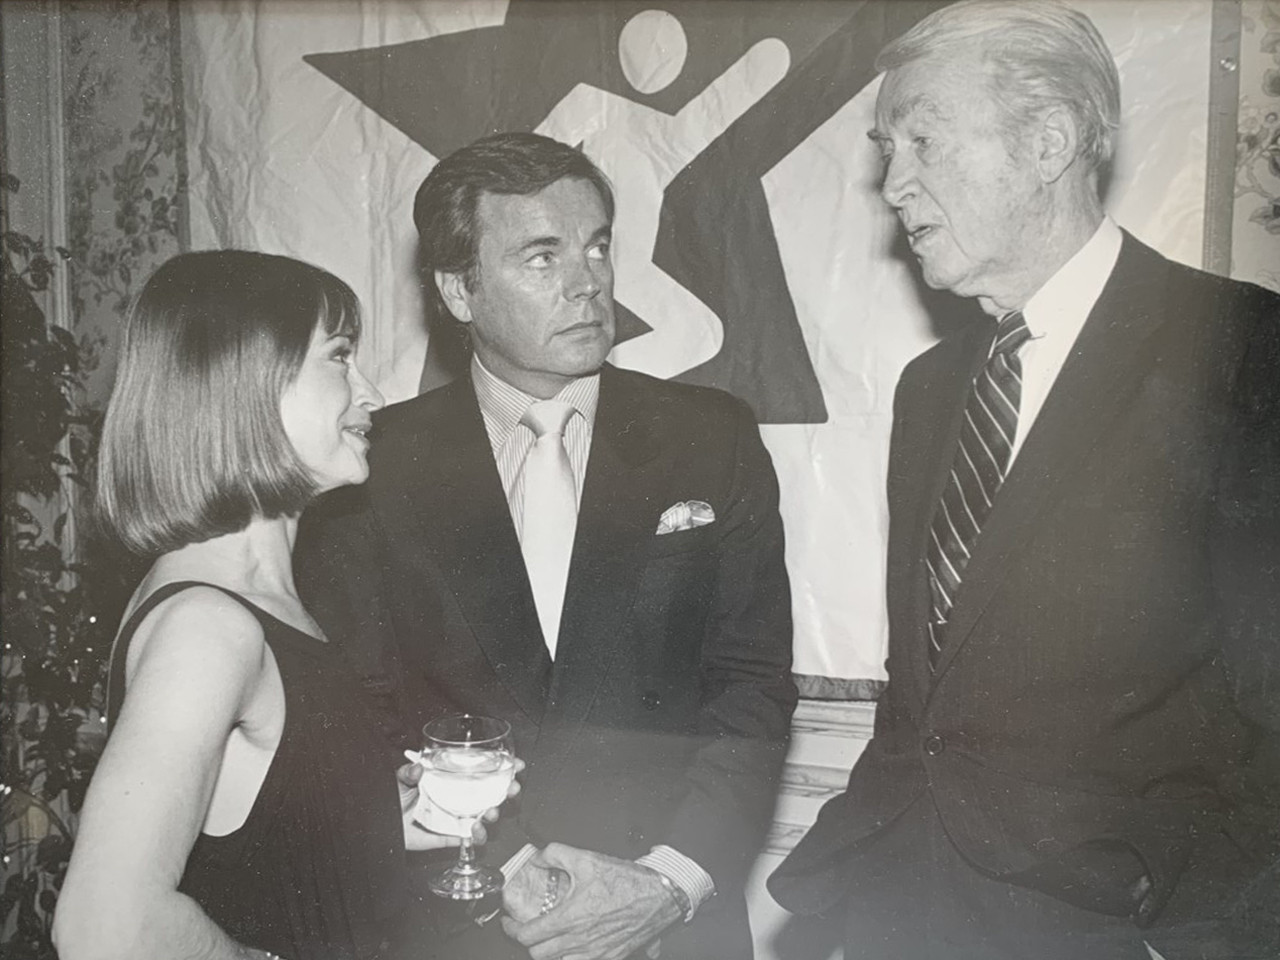 Paxton with Robert Wagner